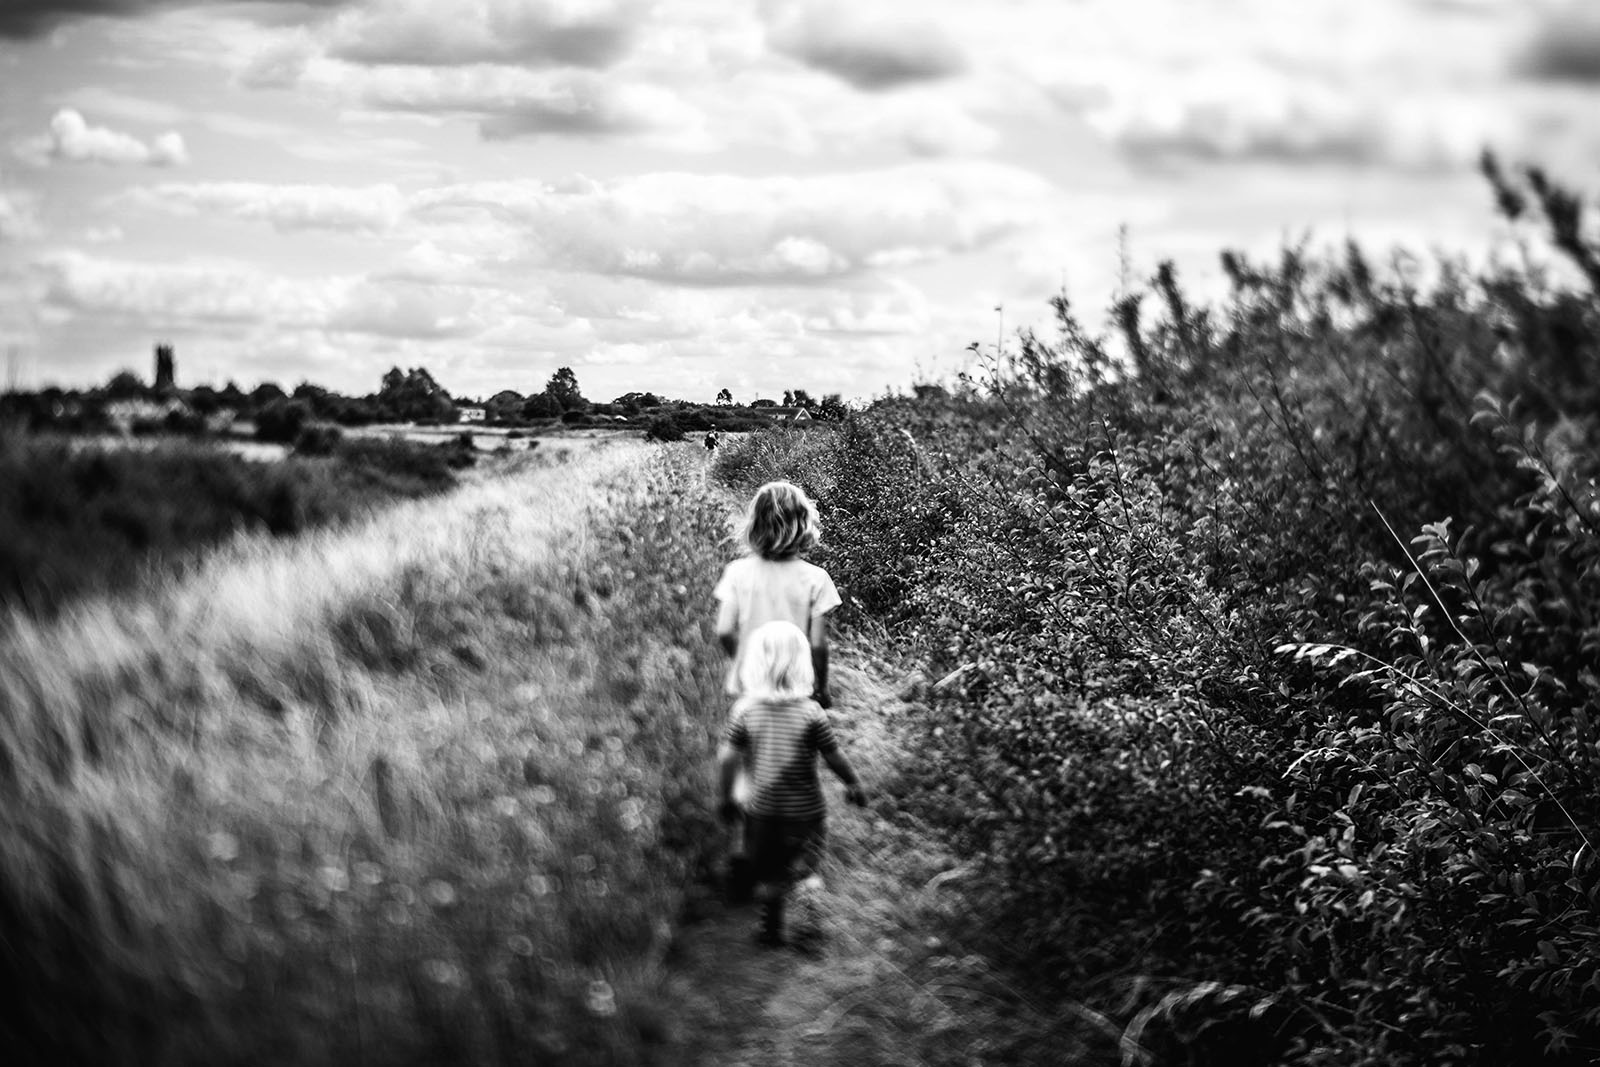 Freelensed image of kids running, budget photography